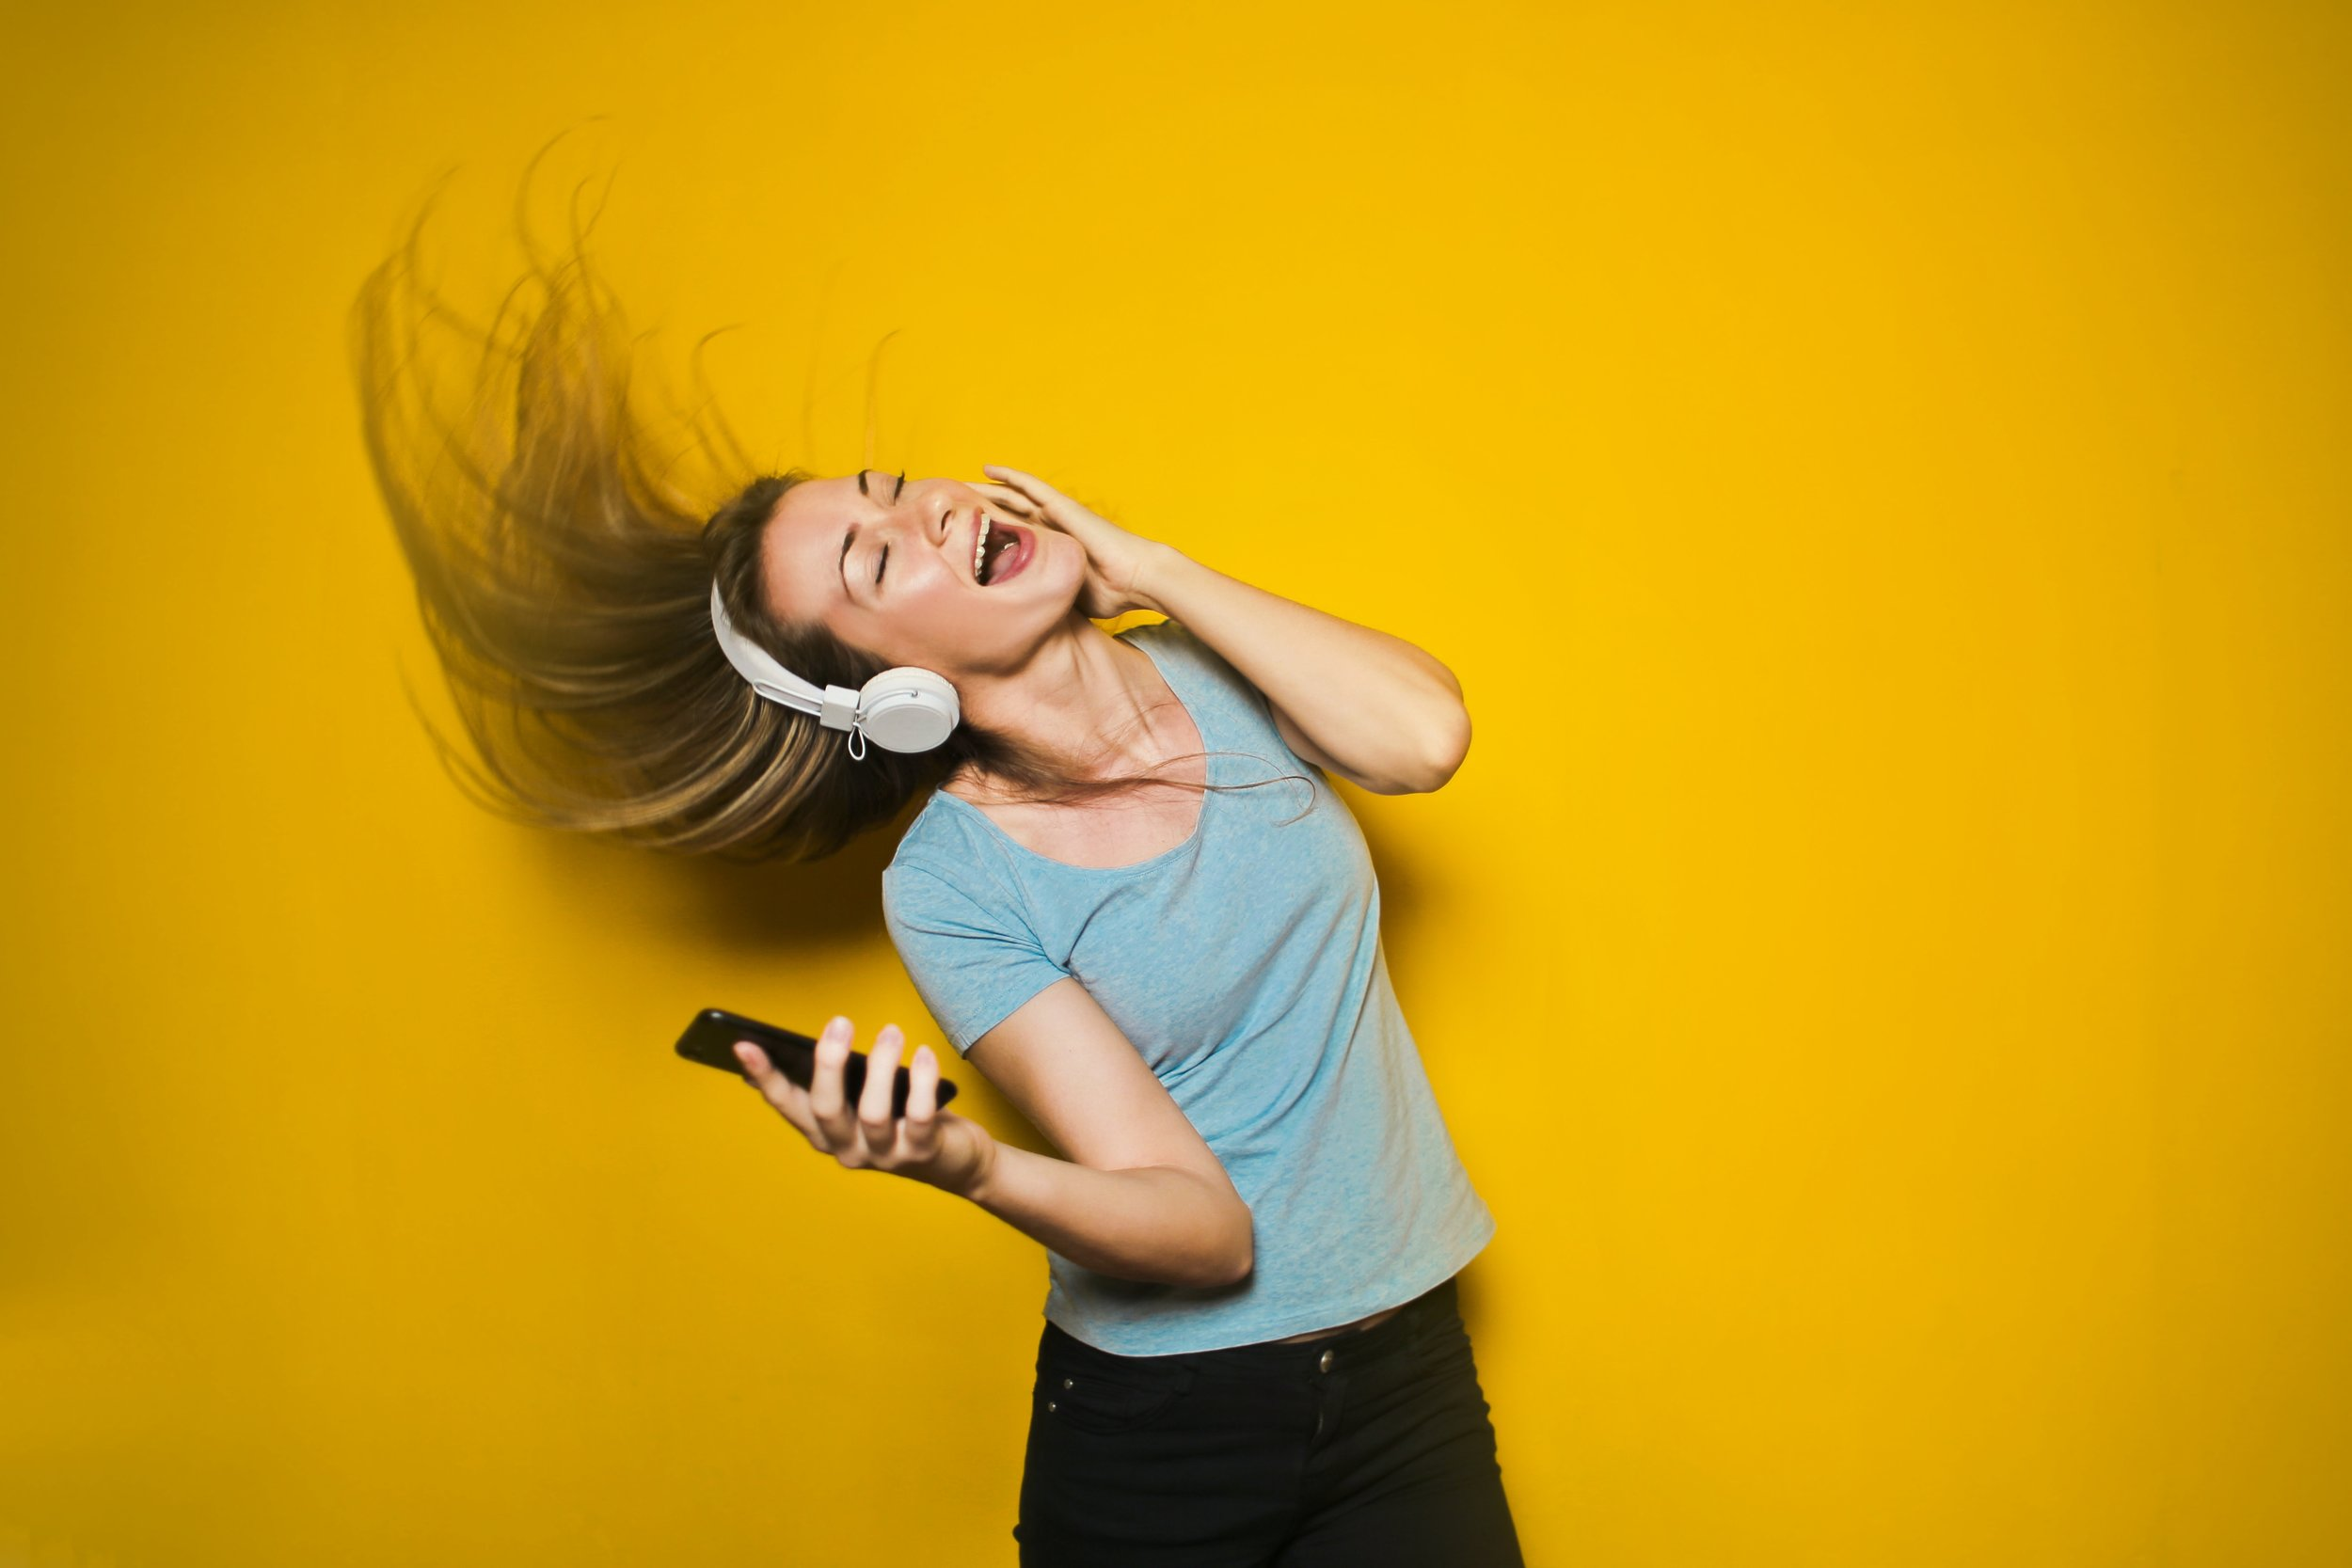 Music Therapy Benefits - Stress is a major factor involved with anxiety, depression, and mood disorders. Music therapy is known for reducing stress symptoms.